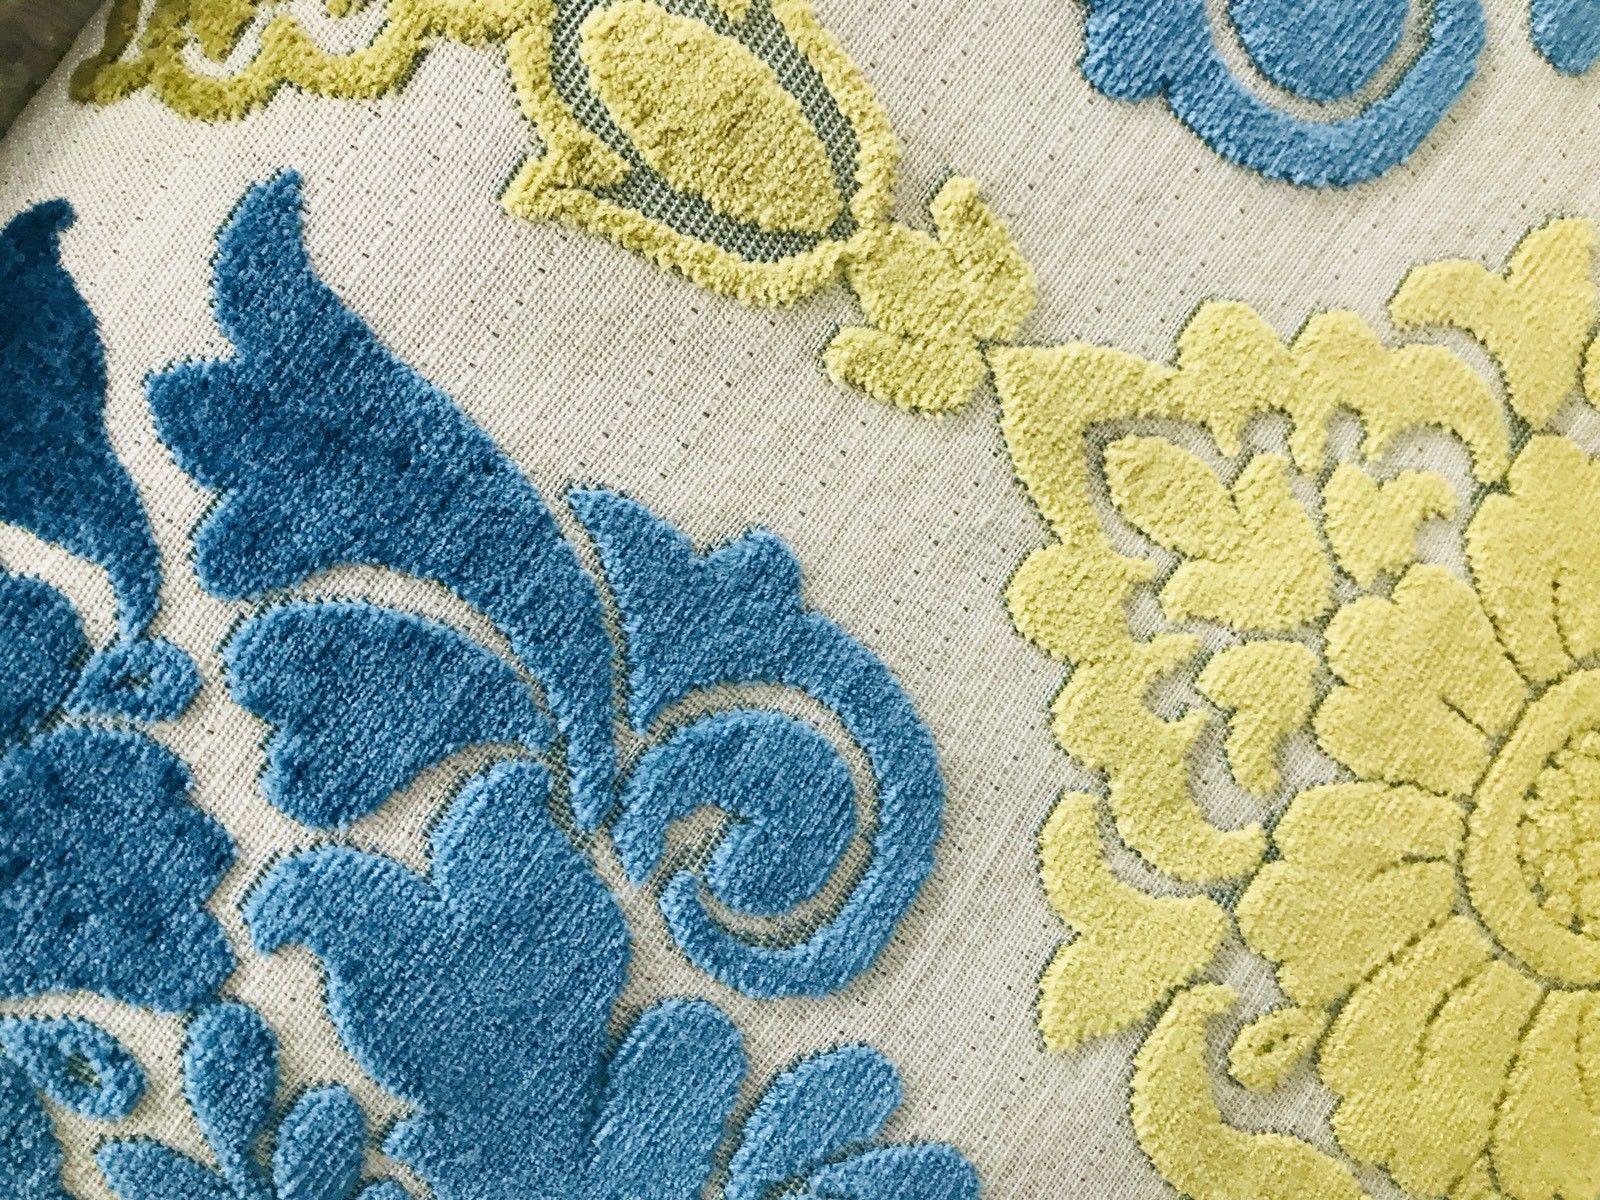 SWATCH- Imported Belgium Burnout Damask Chenille Velvet Fabric Upholstery - Fancy Styles Fabric Boutique